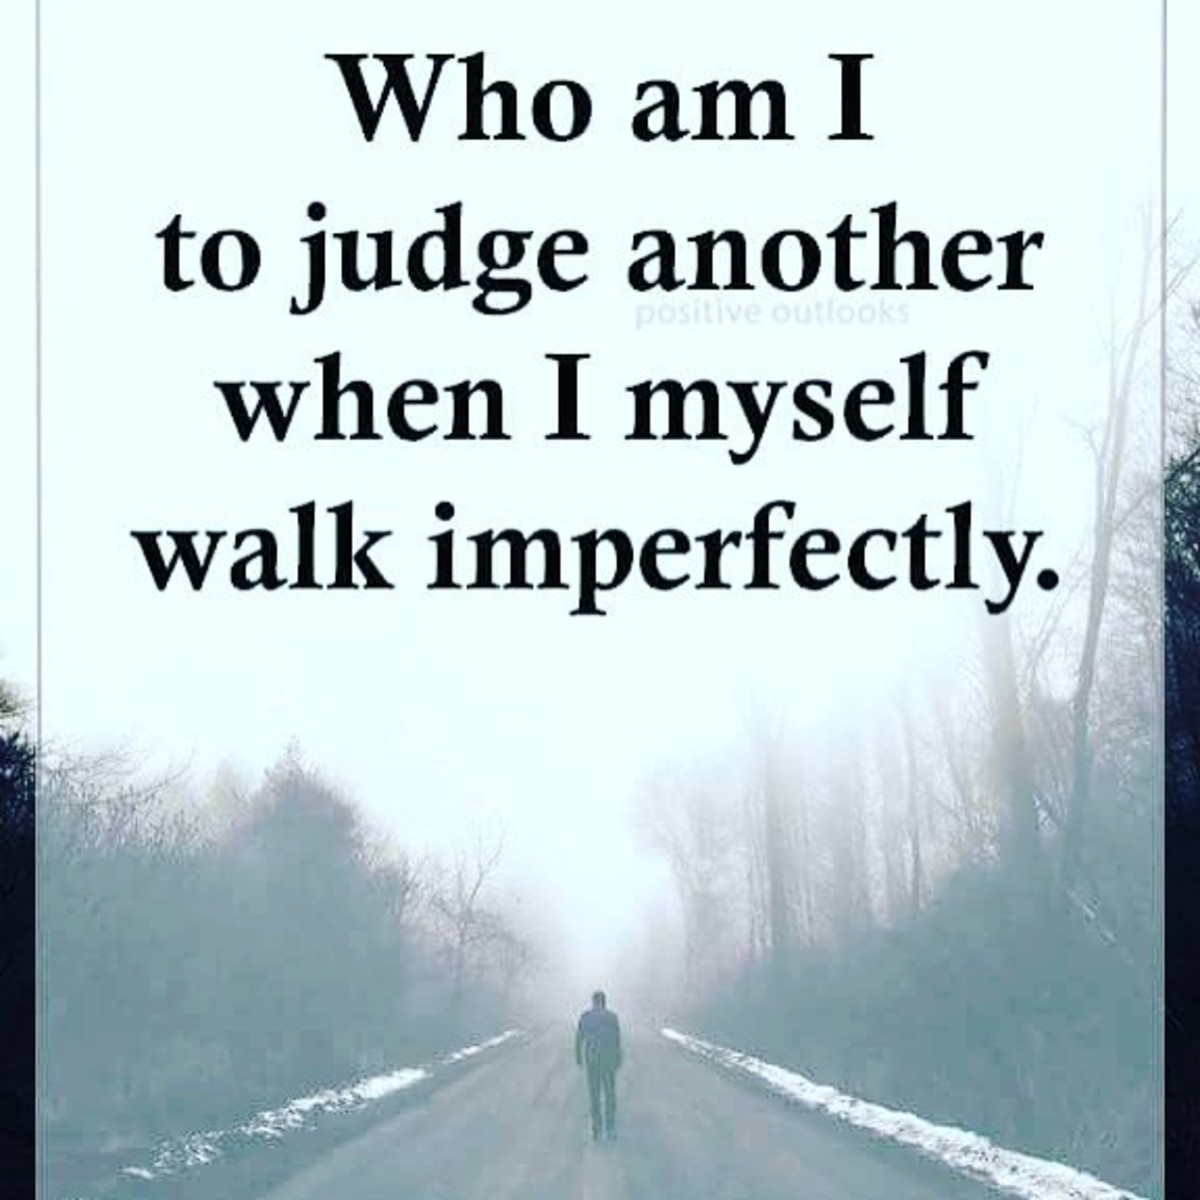 Who am I to judge another, when I walk imperfectly?